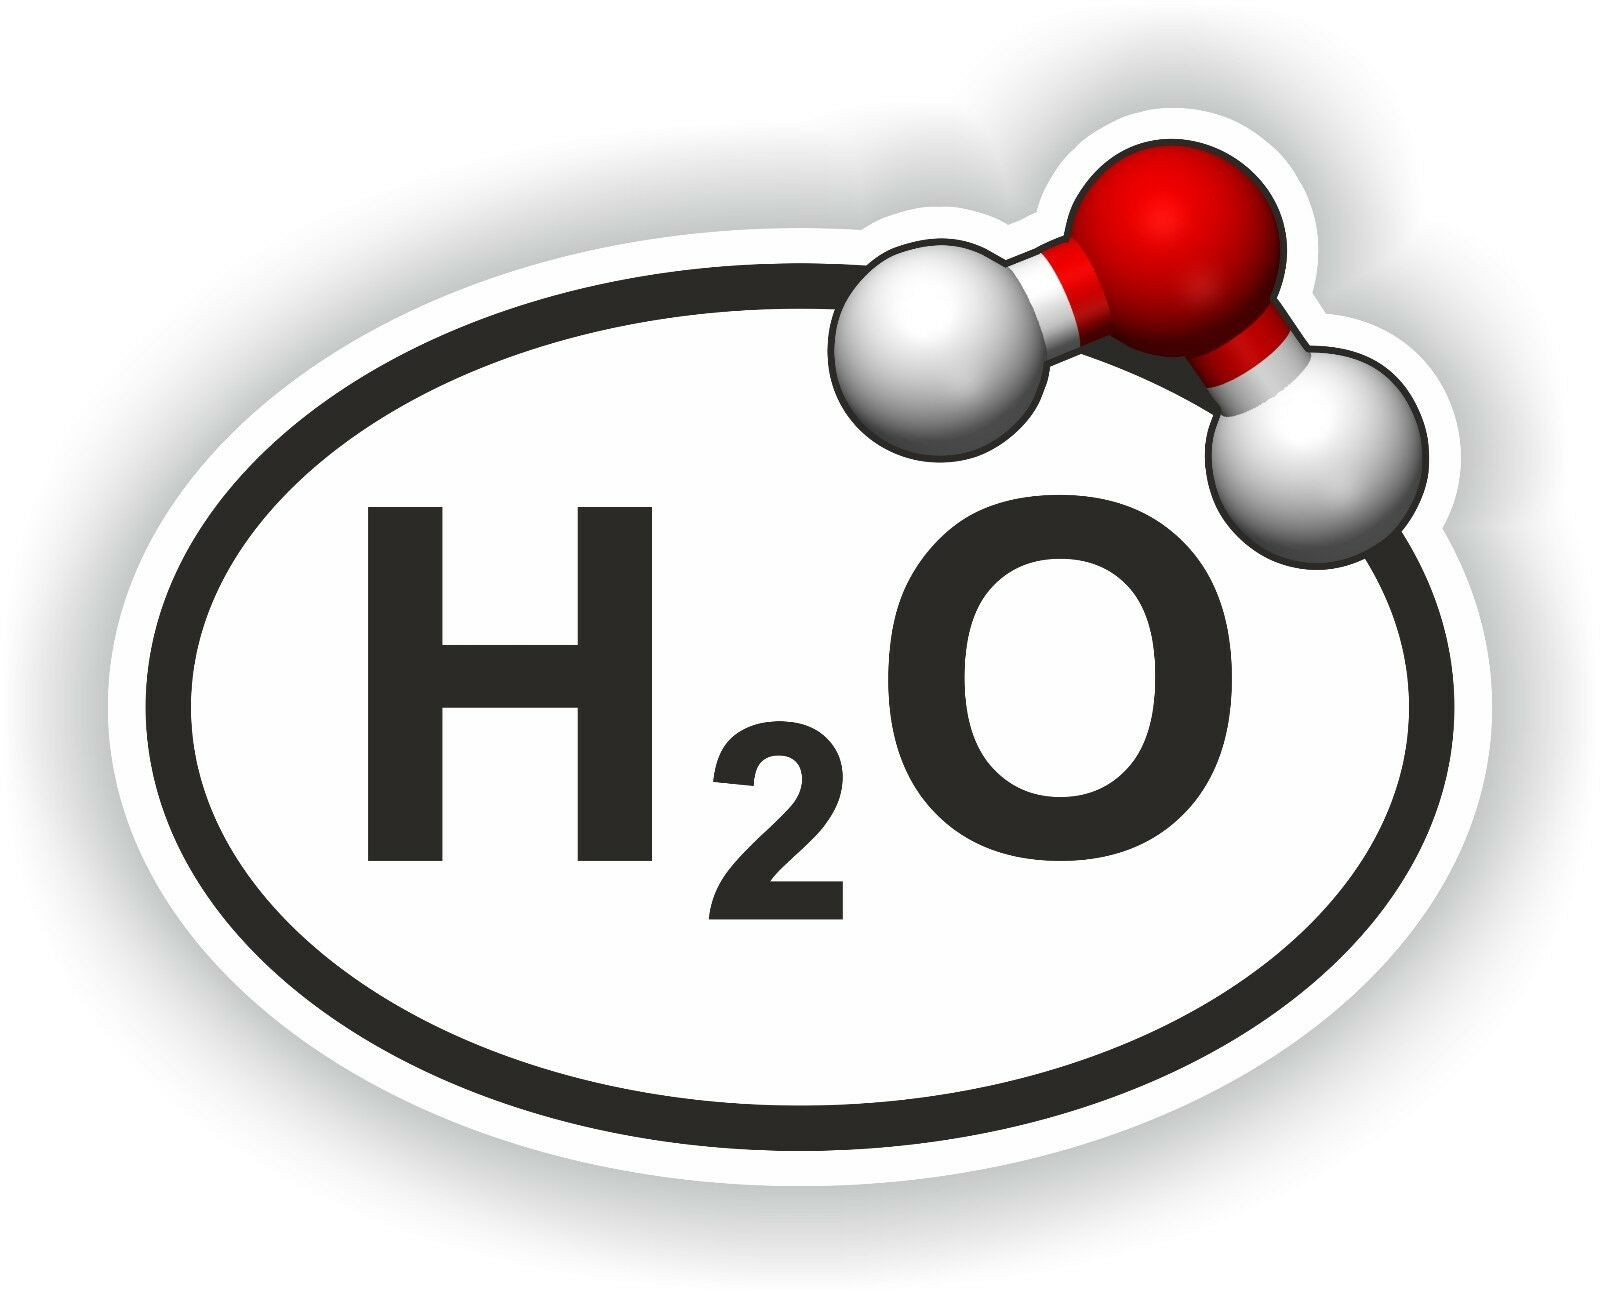 H2o oval sticker water with chemical formula bumper decal car bath resntentobalflowflowcomponenttechnicalissues buycottarizona Choice Image